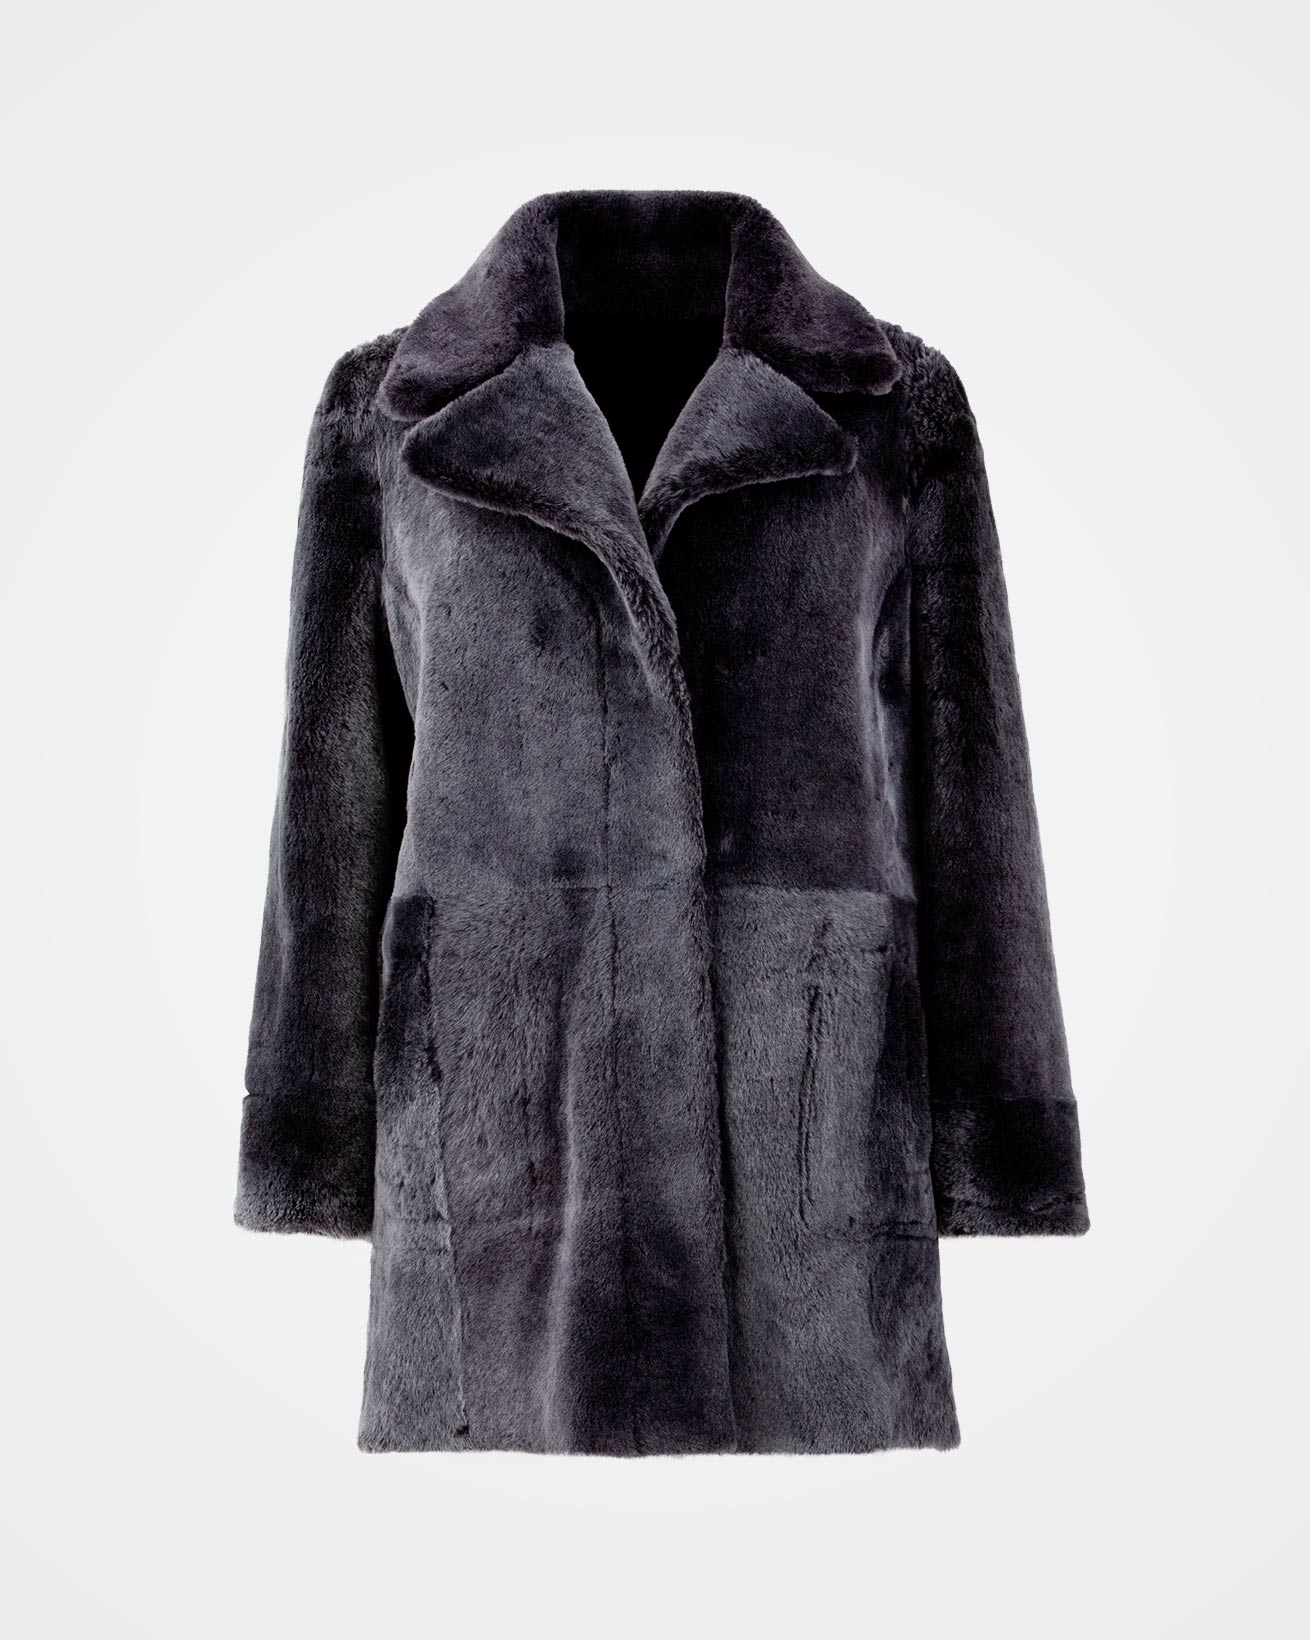 7501_sheepskin-city-coat_ink_front2.jpg